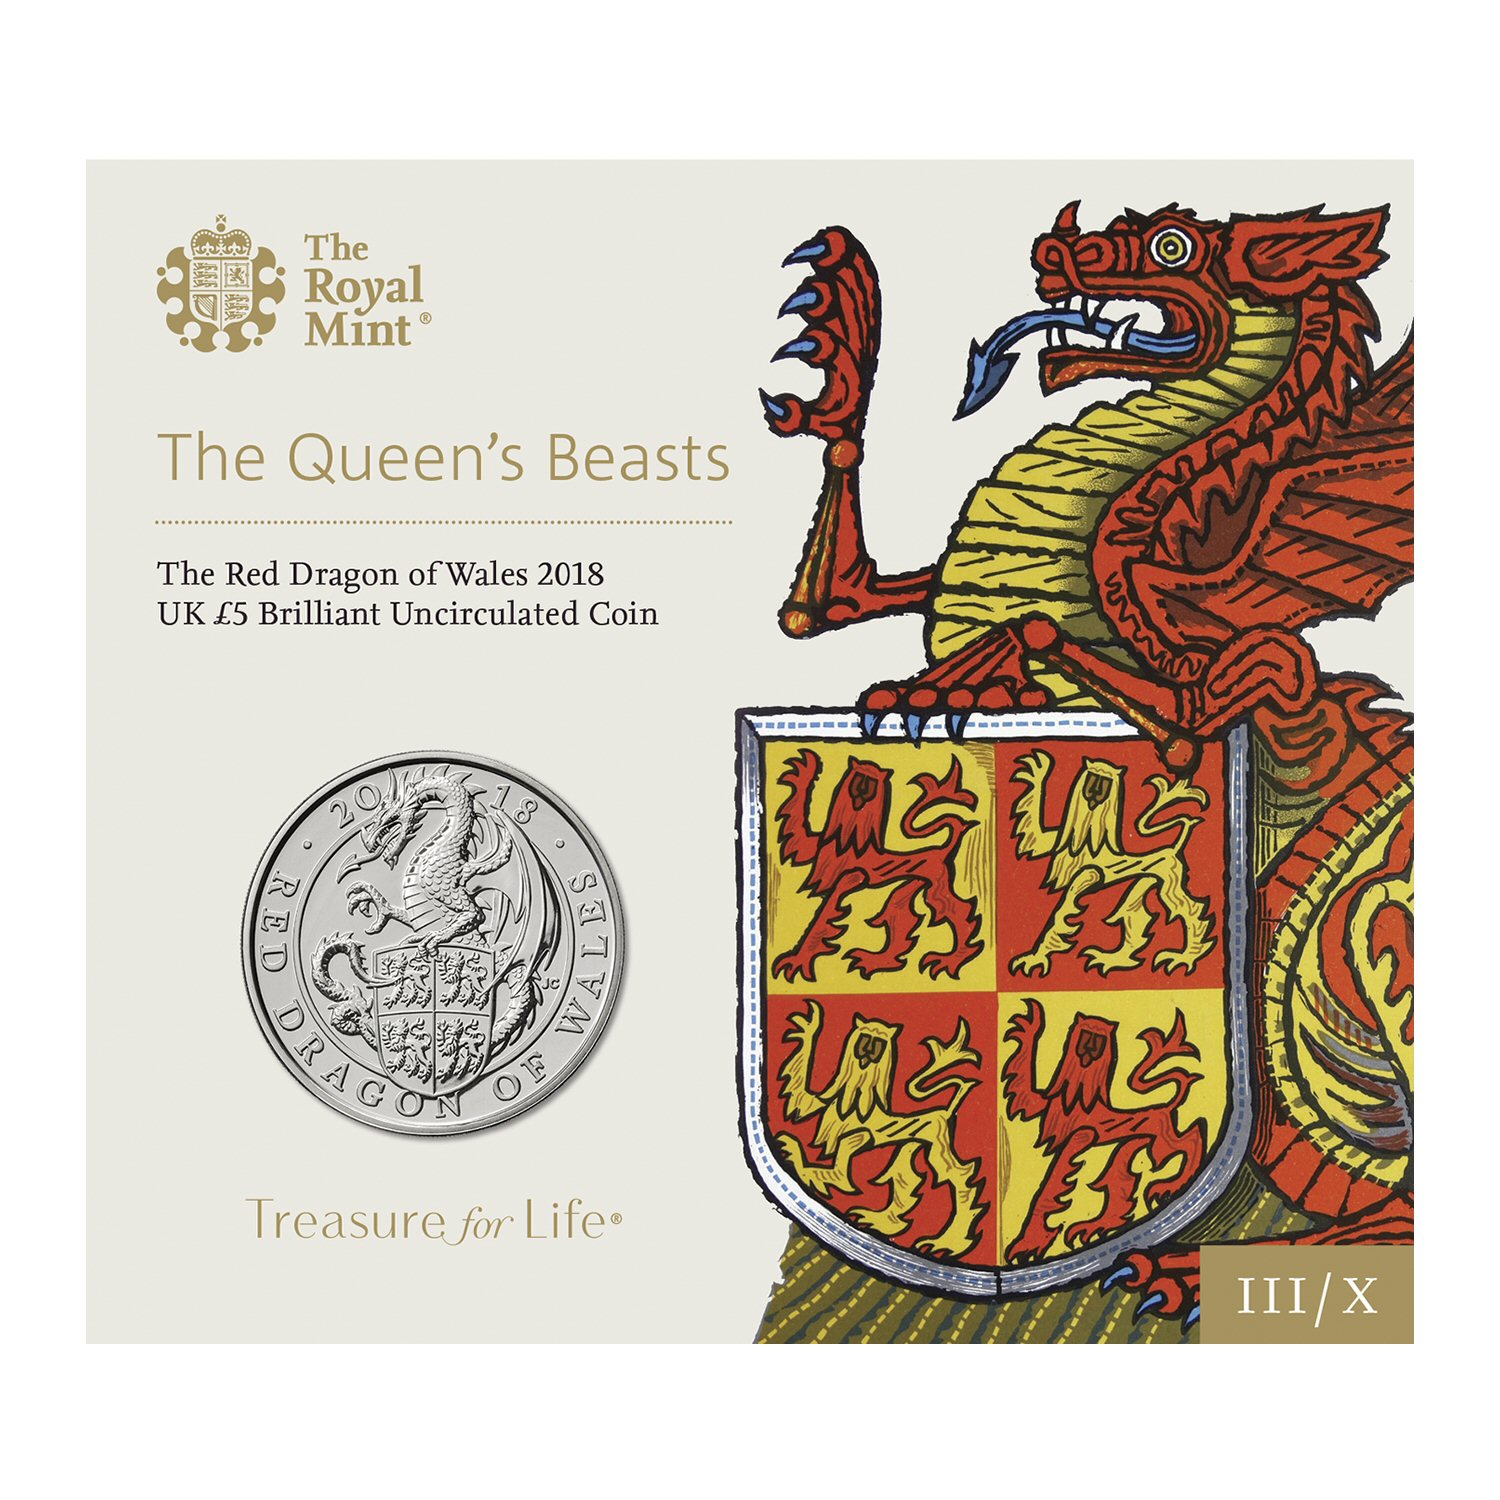 The Red Dragon of Wales 2018 UK £5 Brilliant Uncirculated